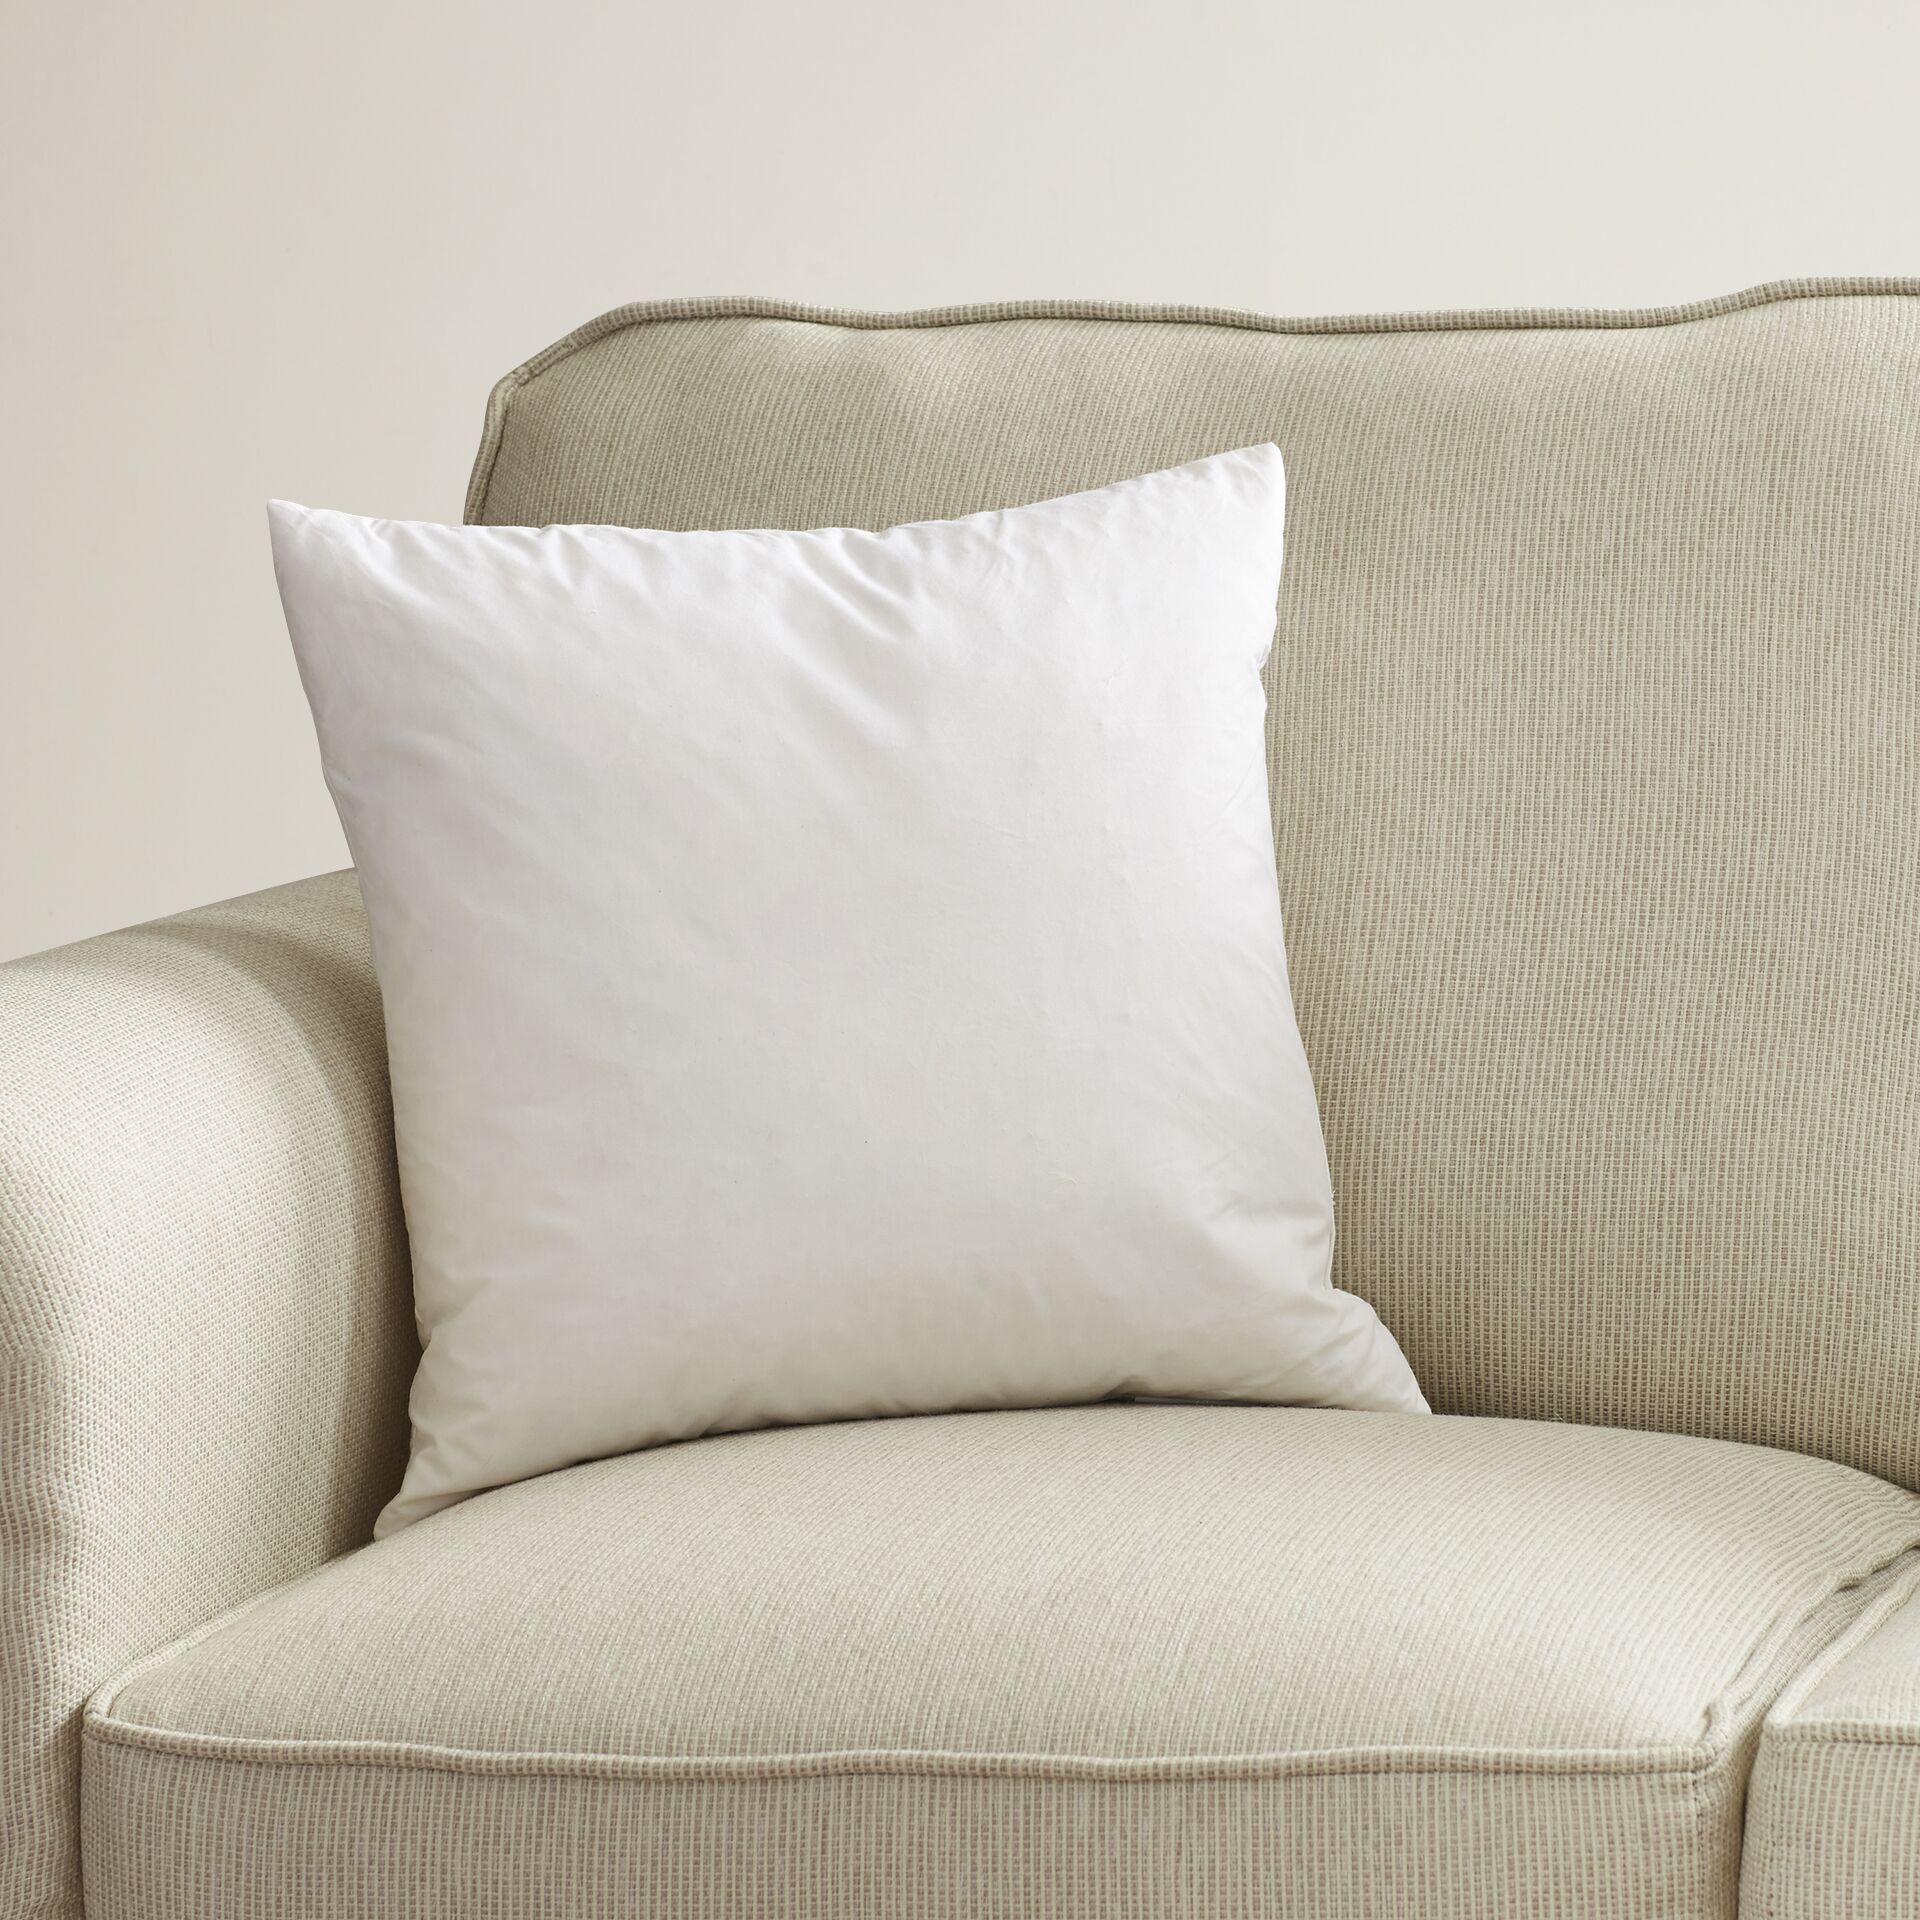 Square Pillow Insert Size: 14